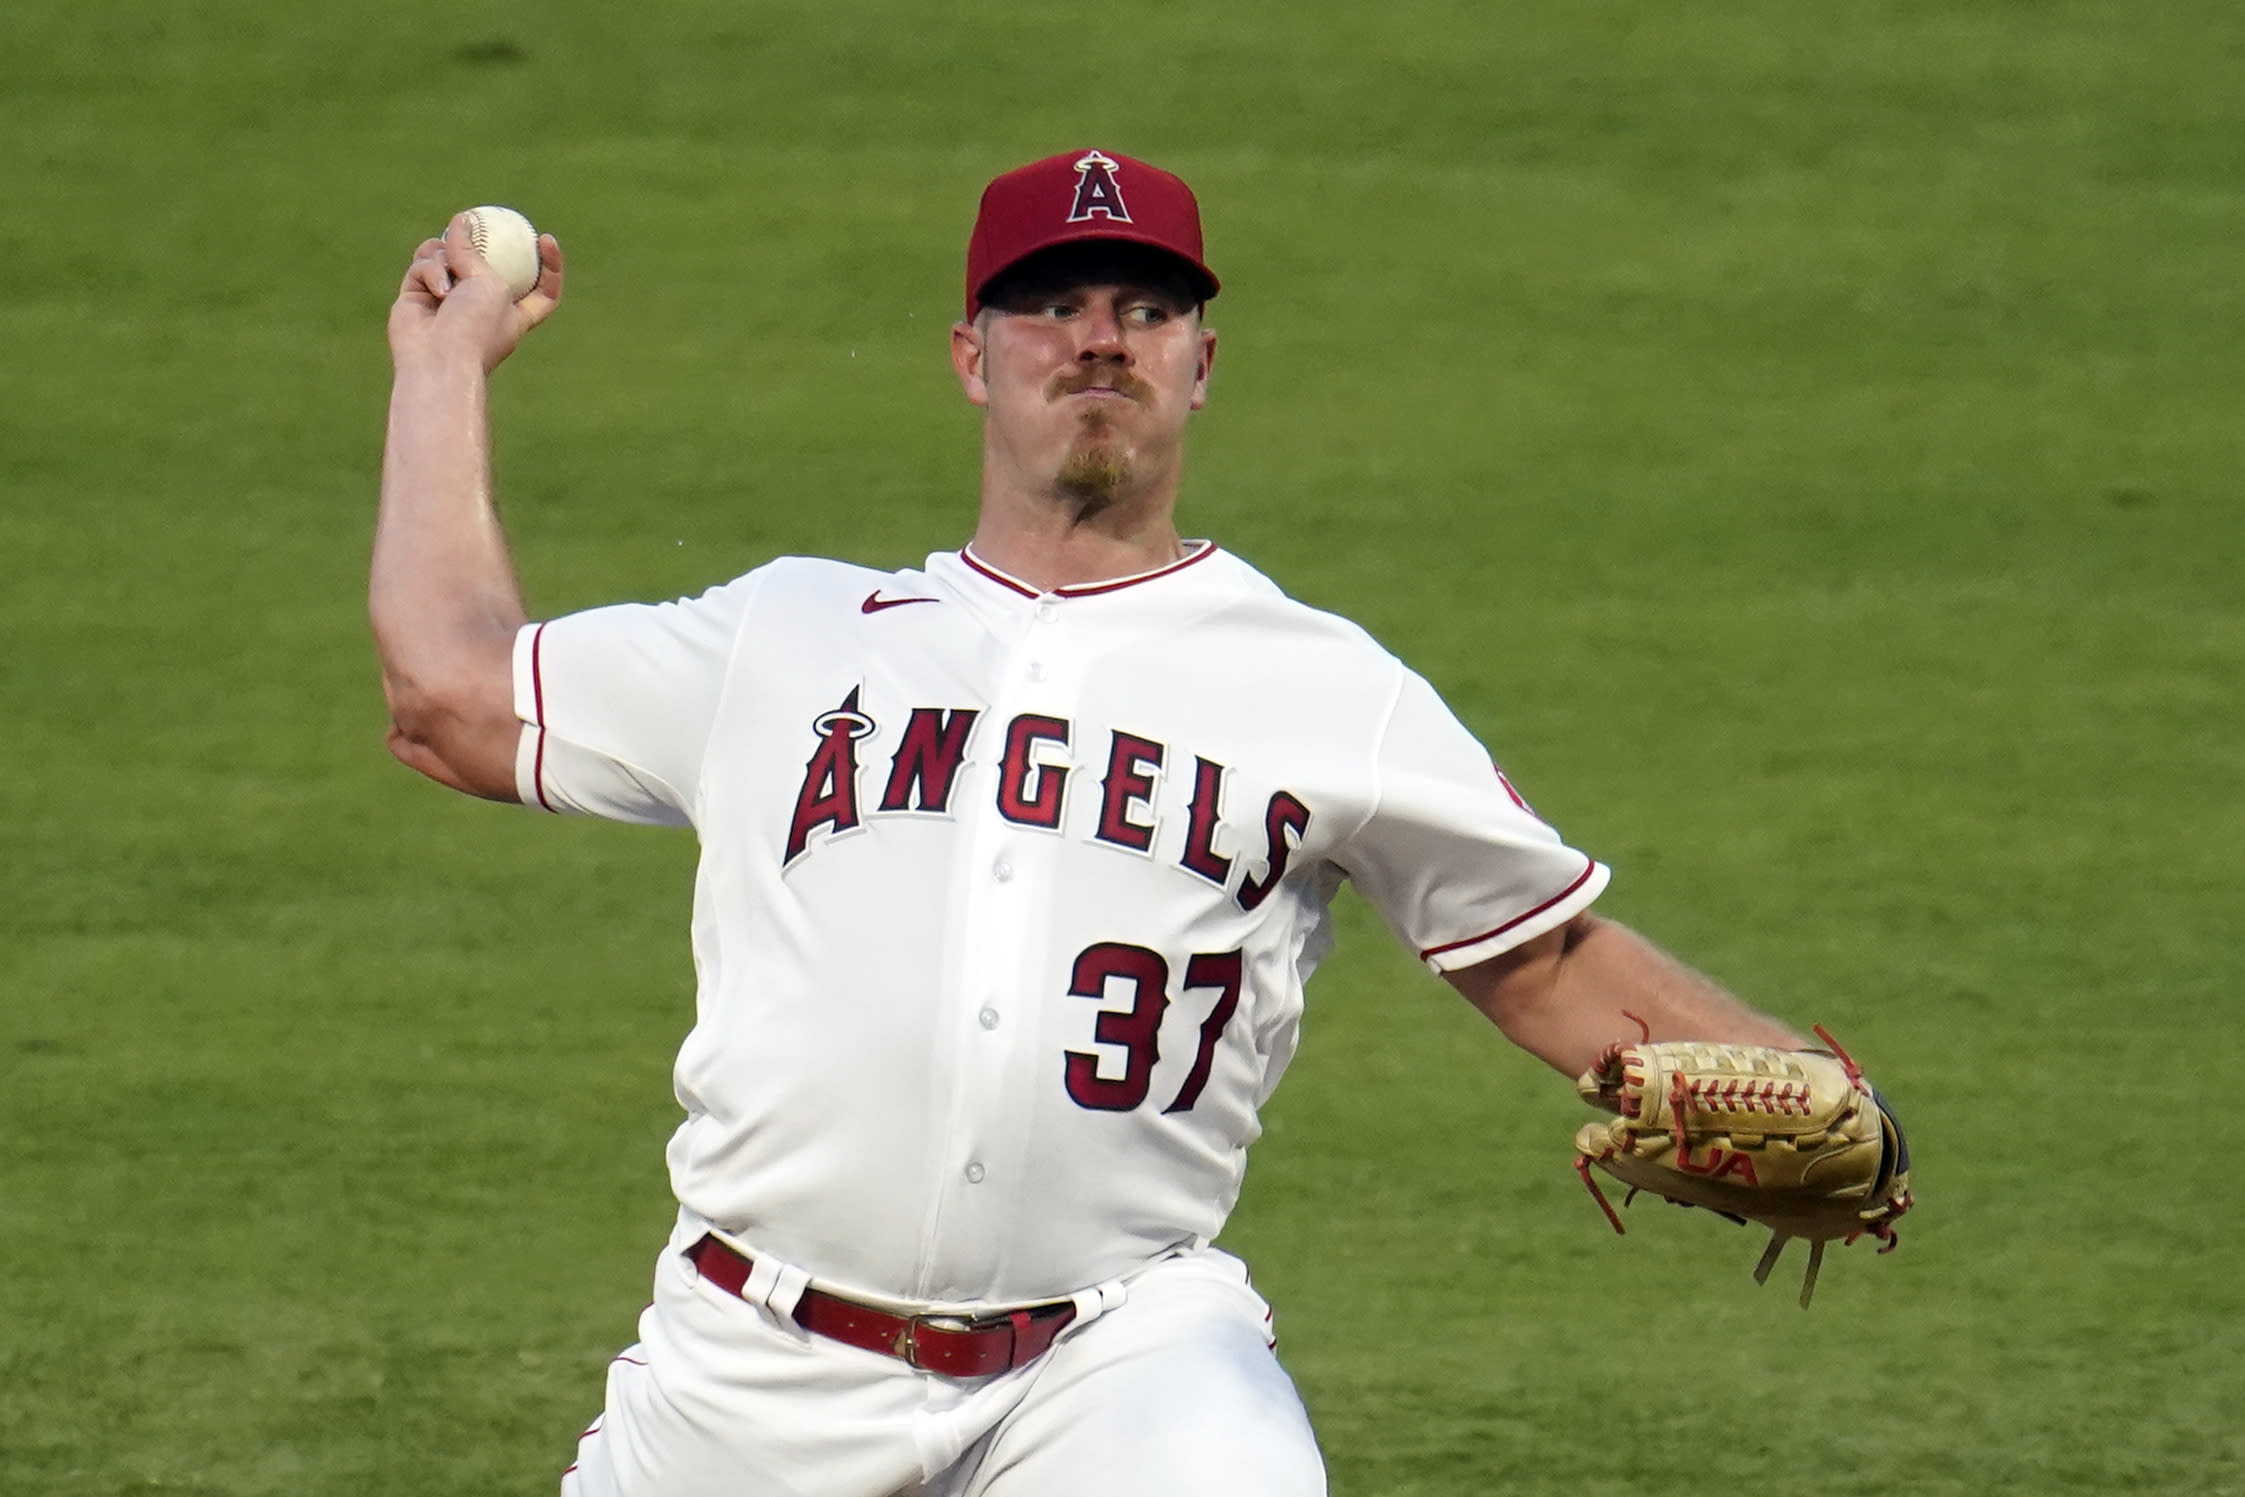 Los Angeles Angels starting pitcher Dylan Bundy throws to the Arizona Diamondbacks during the first inning of a baseball game Wednesday, Sept. 16, 2020, in Anaheim, Calif. (AP Photo/Marcio Jose Sanchez)